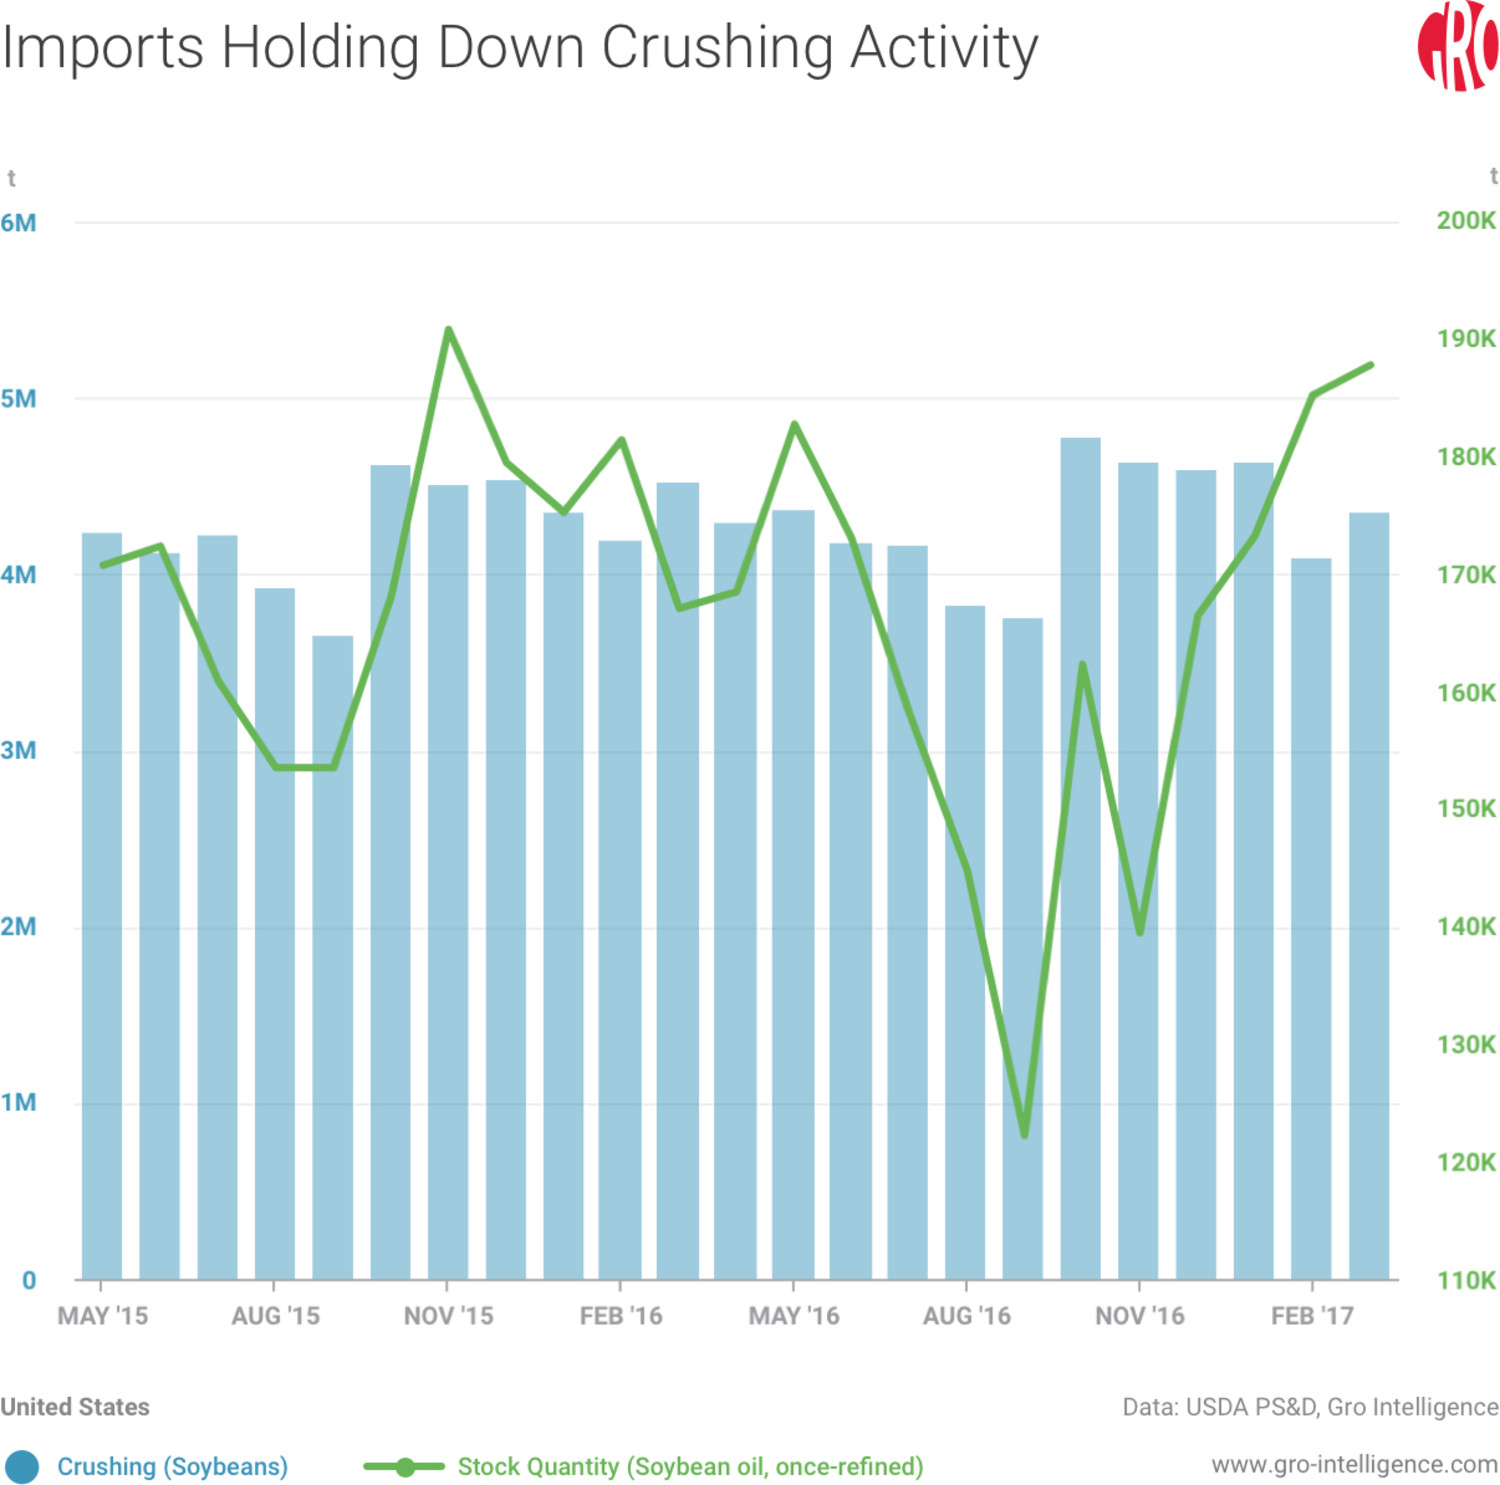 Imports Holding Down Crushing Activity